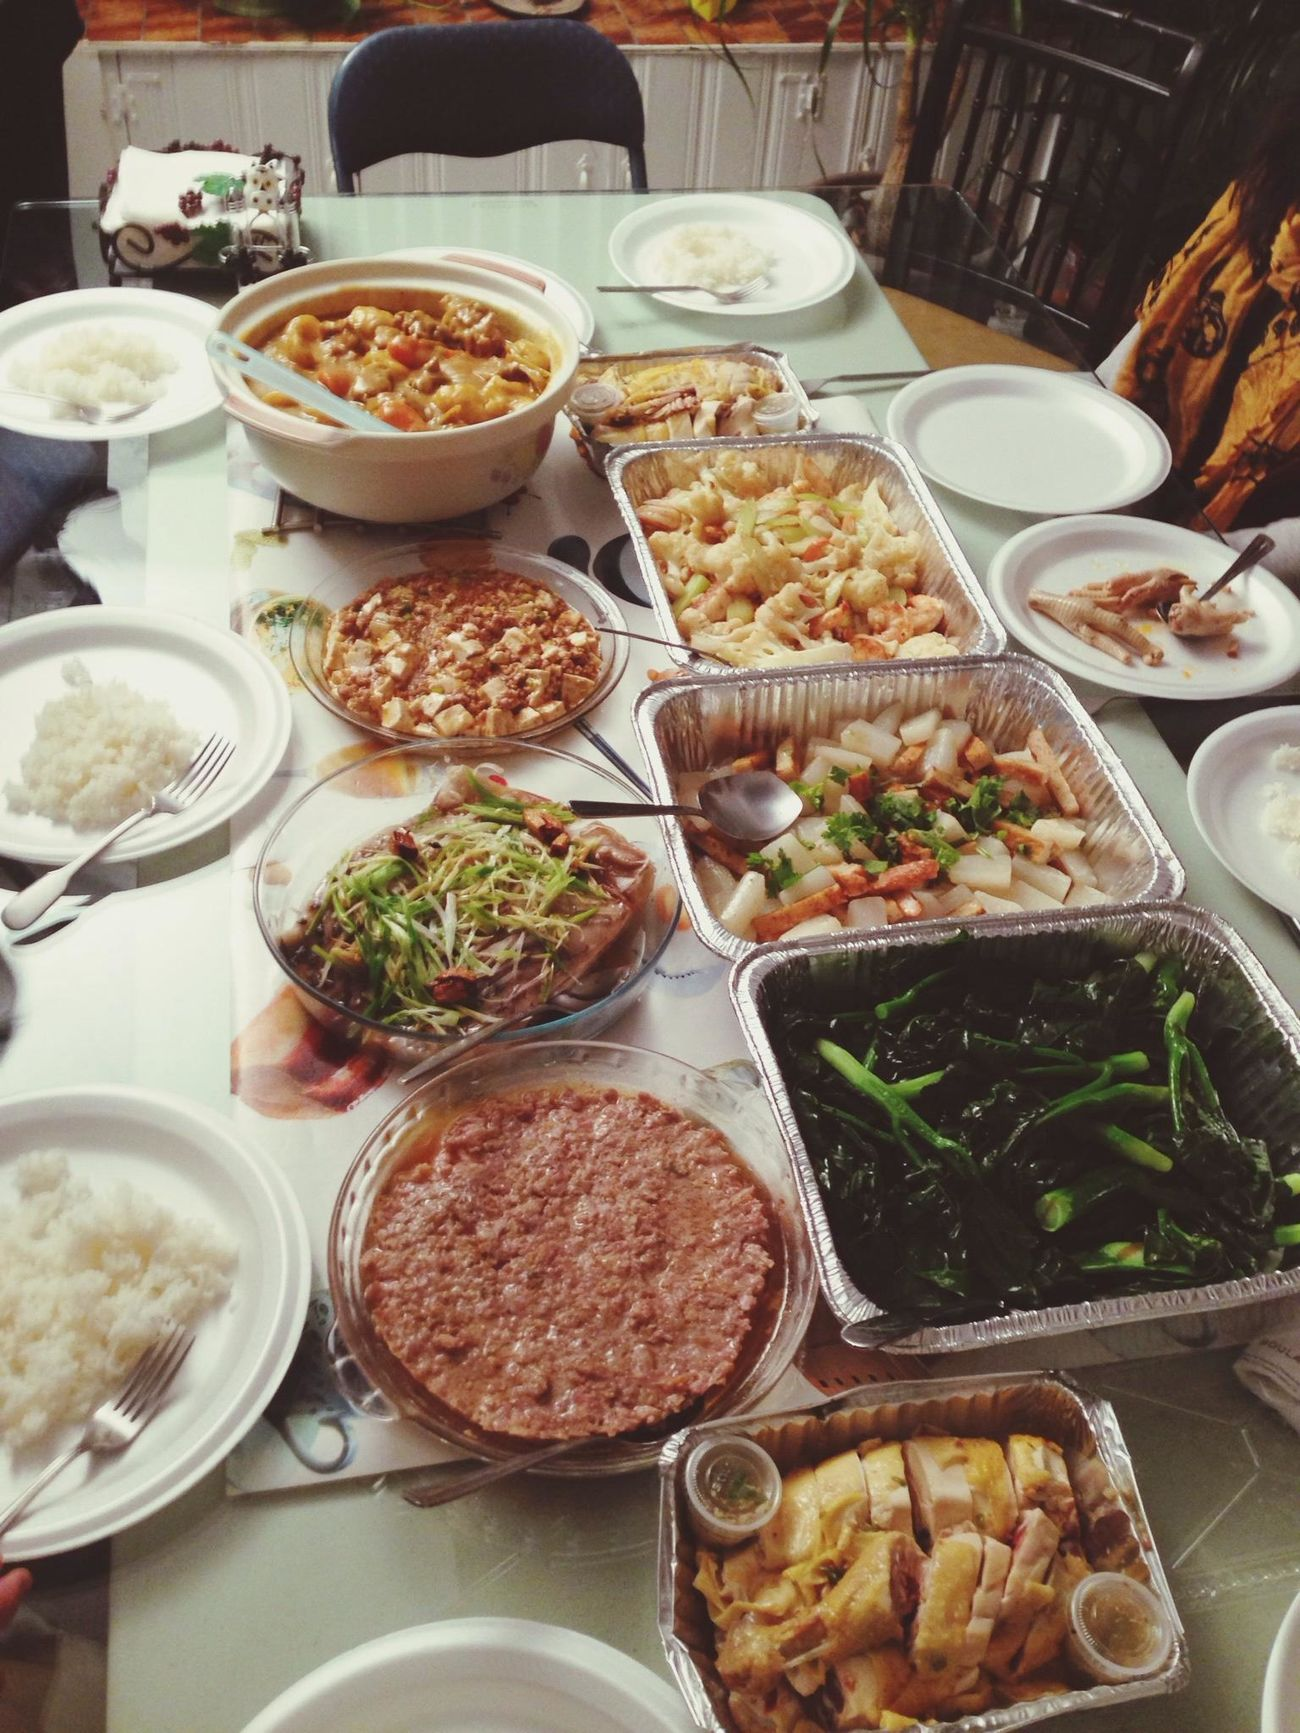 typical family dinner ... yummie